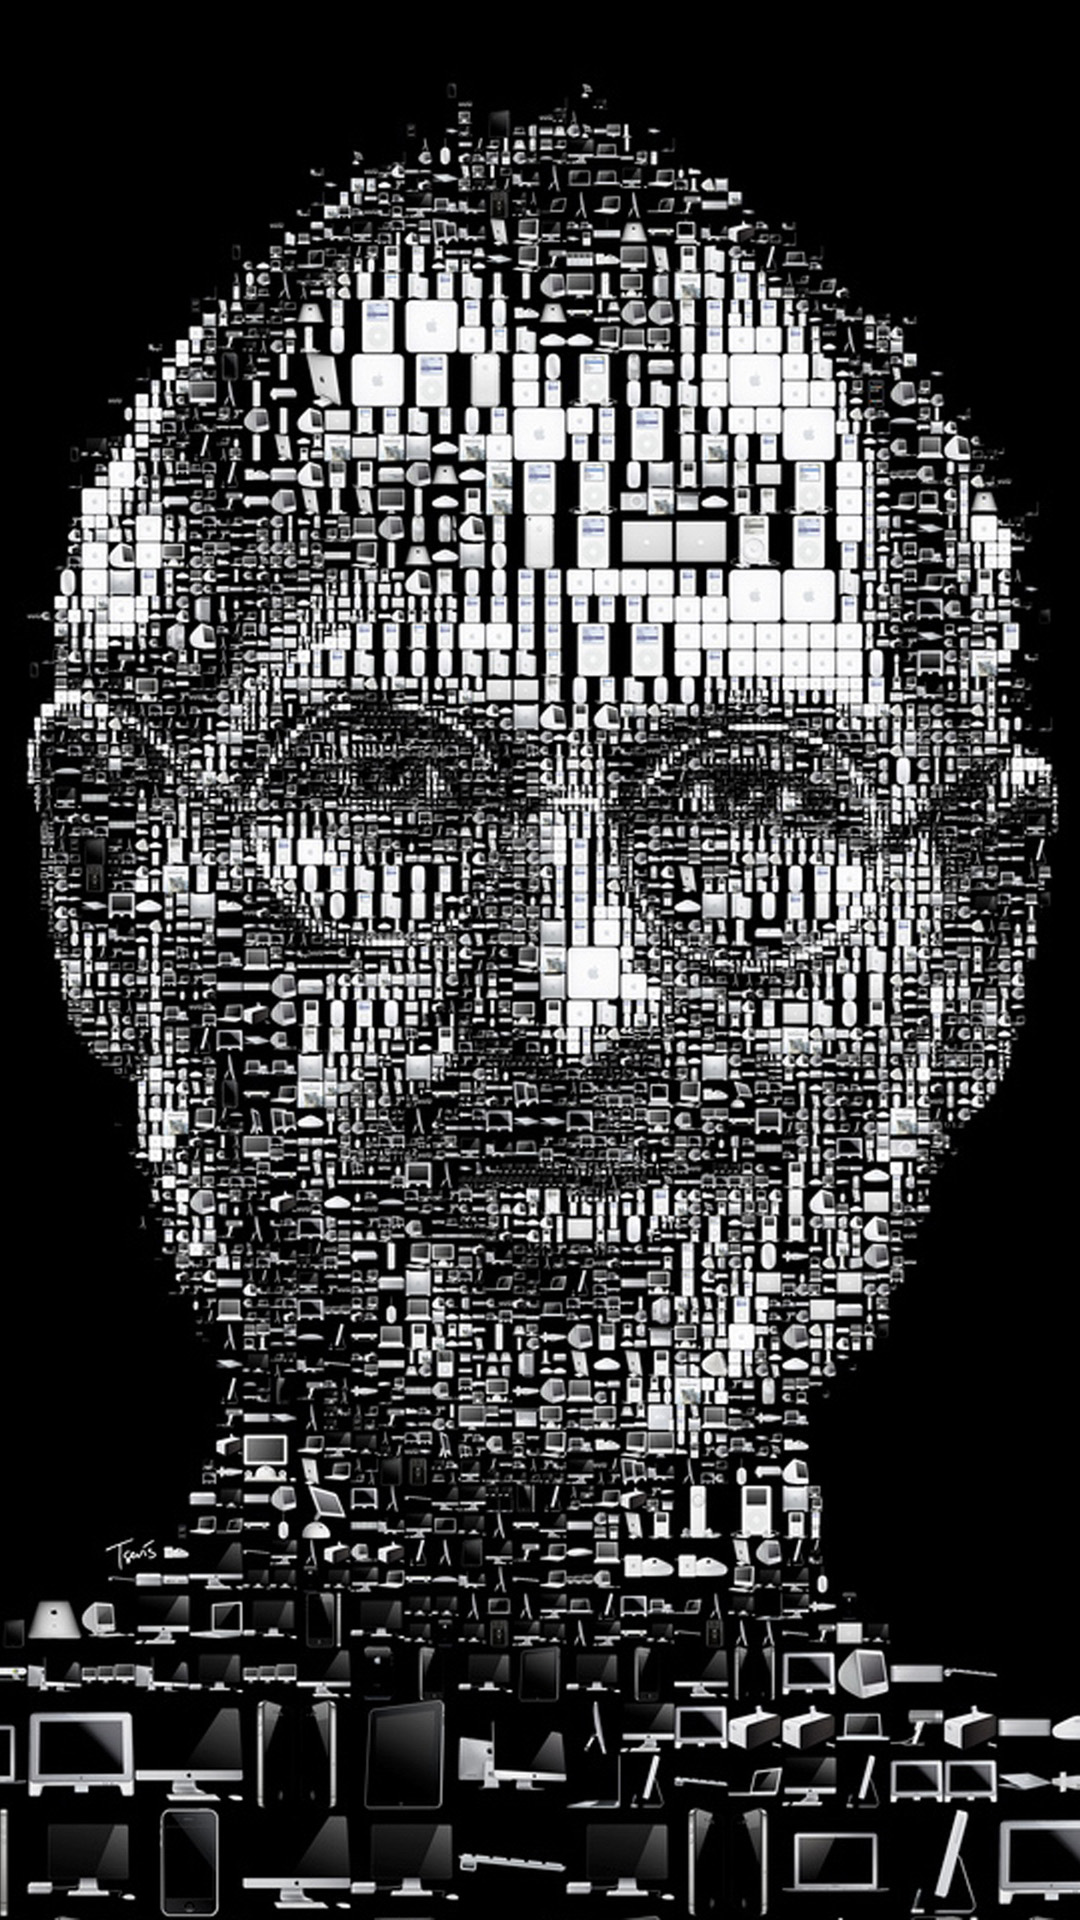 Make Your Own Iphone 5 Wallpaper Steve Jobs Tribute Wallpapers For Iphone 6 And Iphone 6 Plus